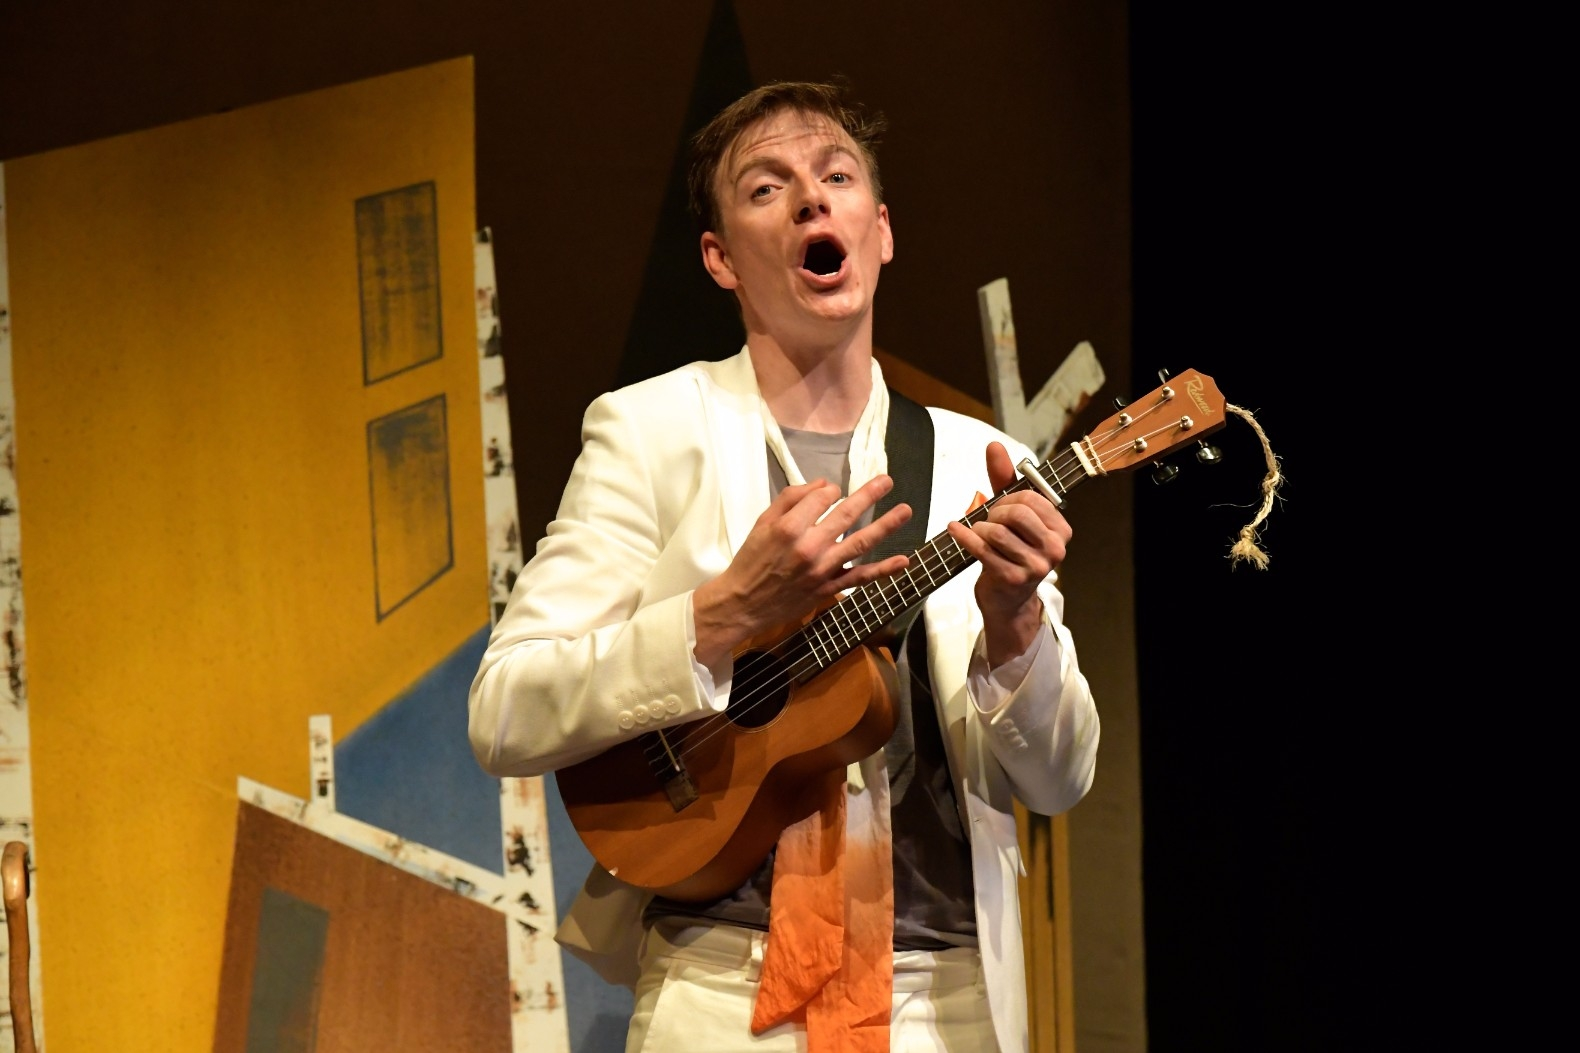 Daniel Naddafy - Ugly Duckling by Emma Reeves, photo by Brian Slater 5 (2)